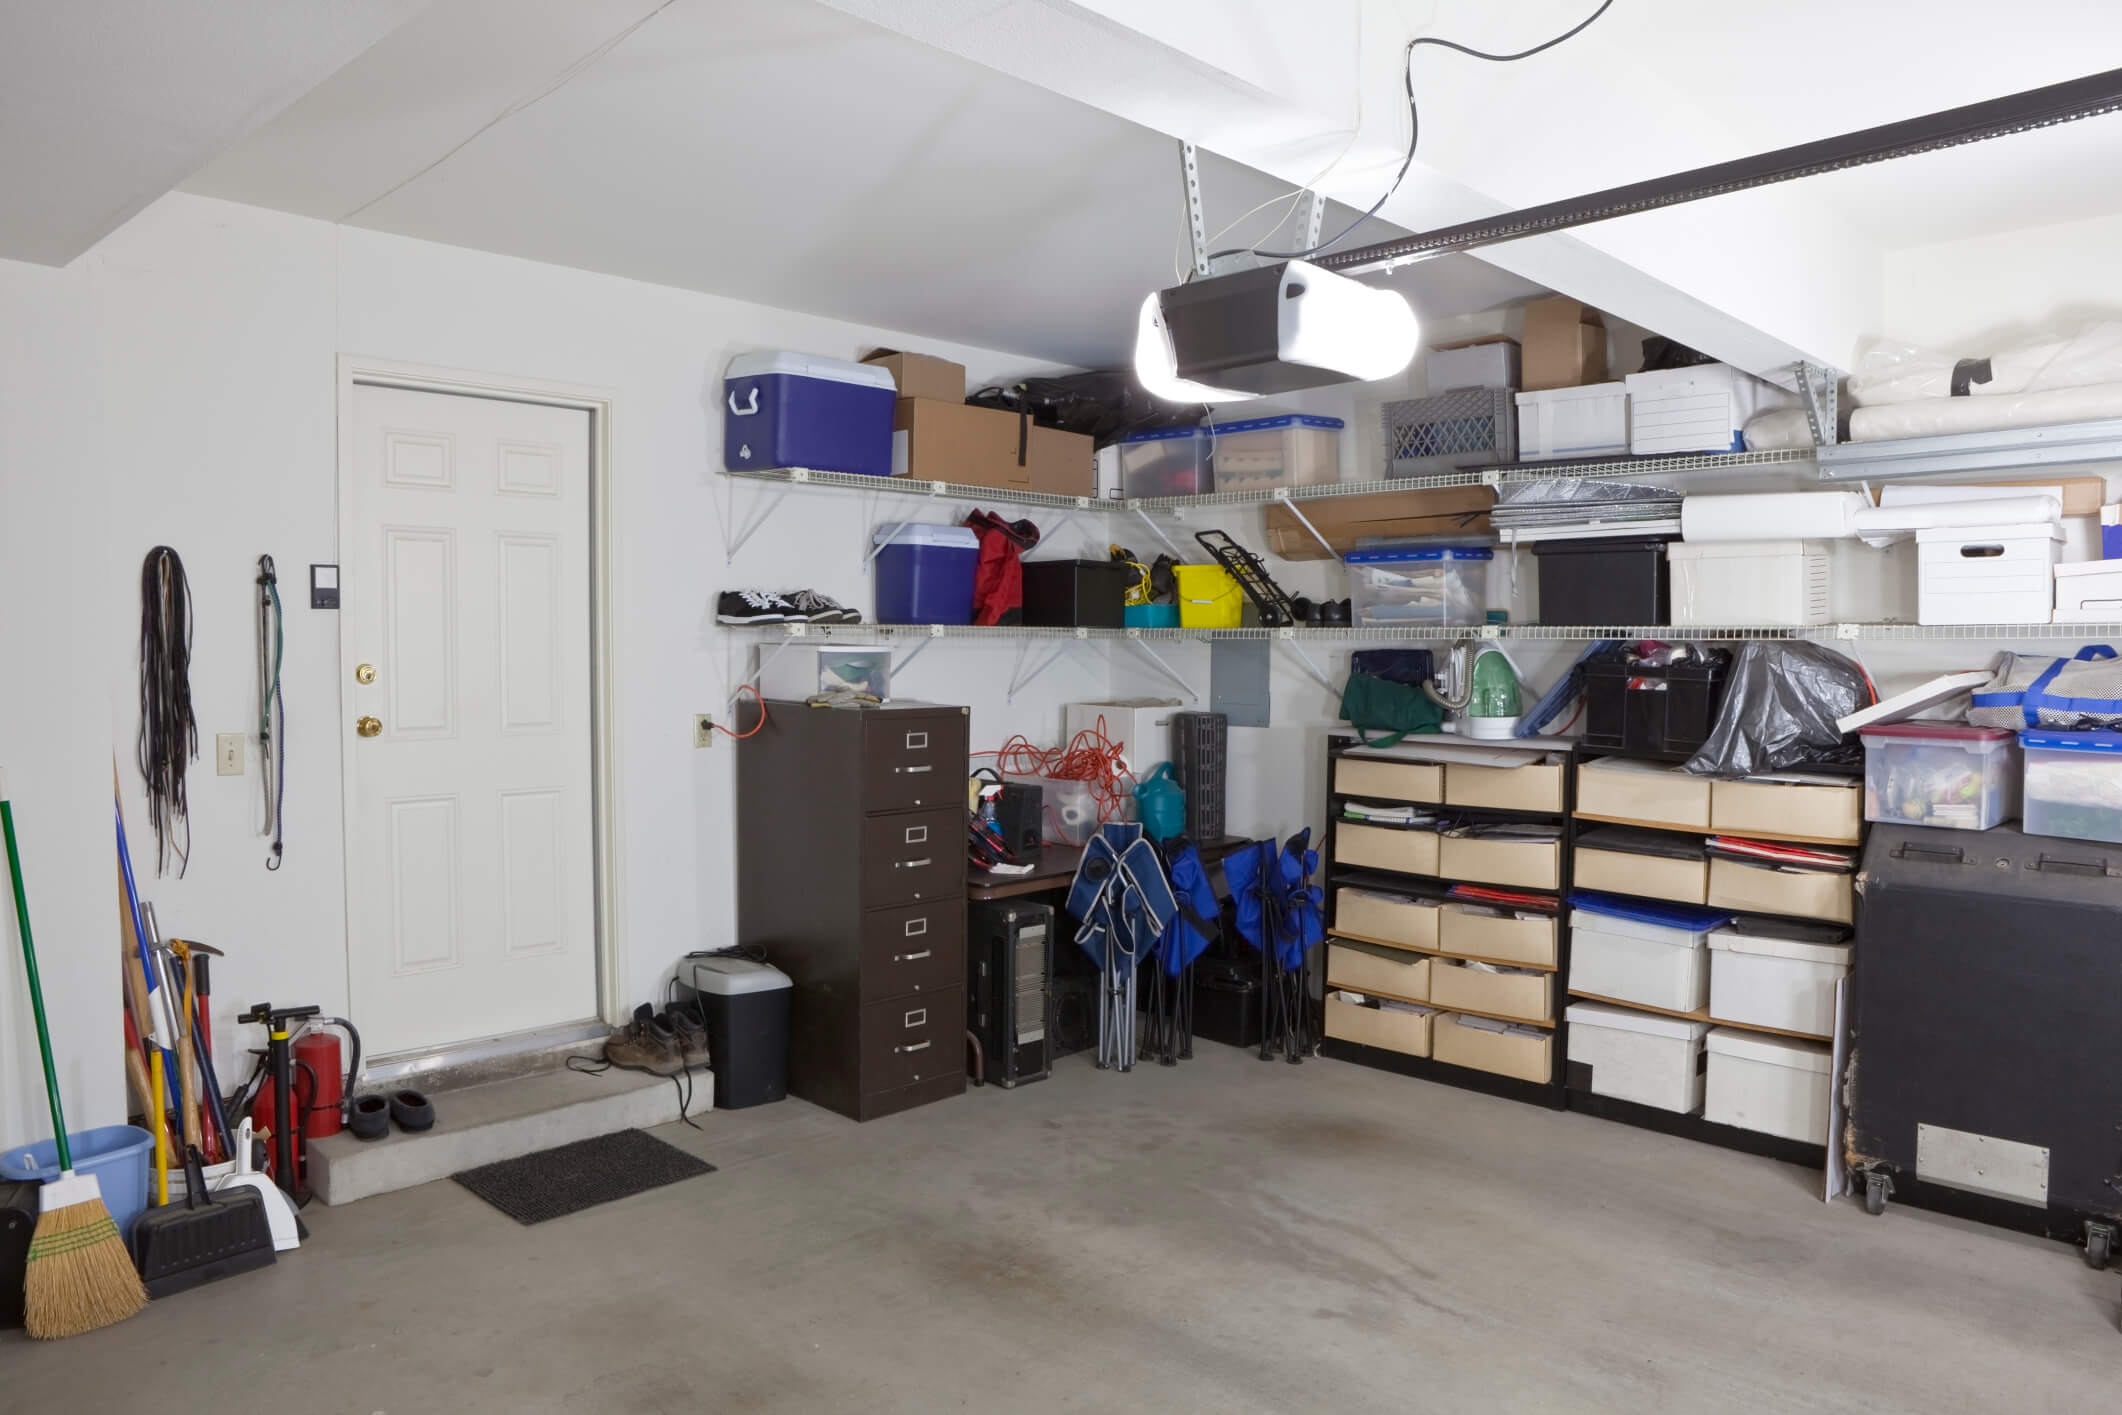 How to Keep Bugs and Other Pests Out of Your Garage